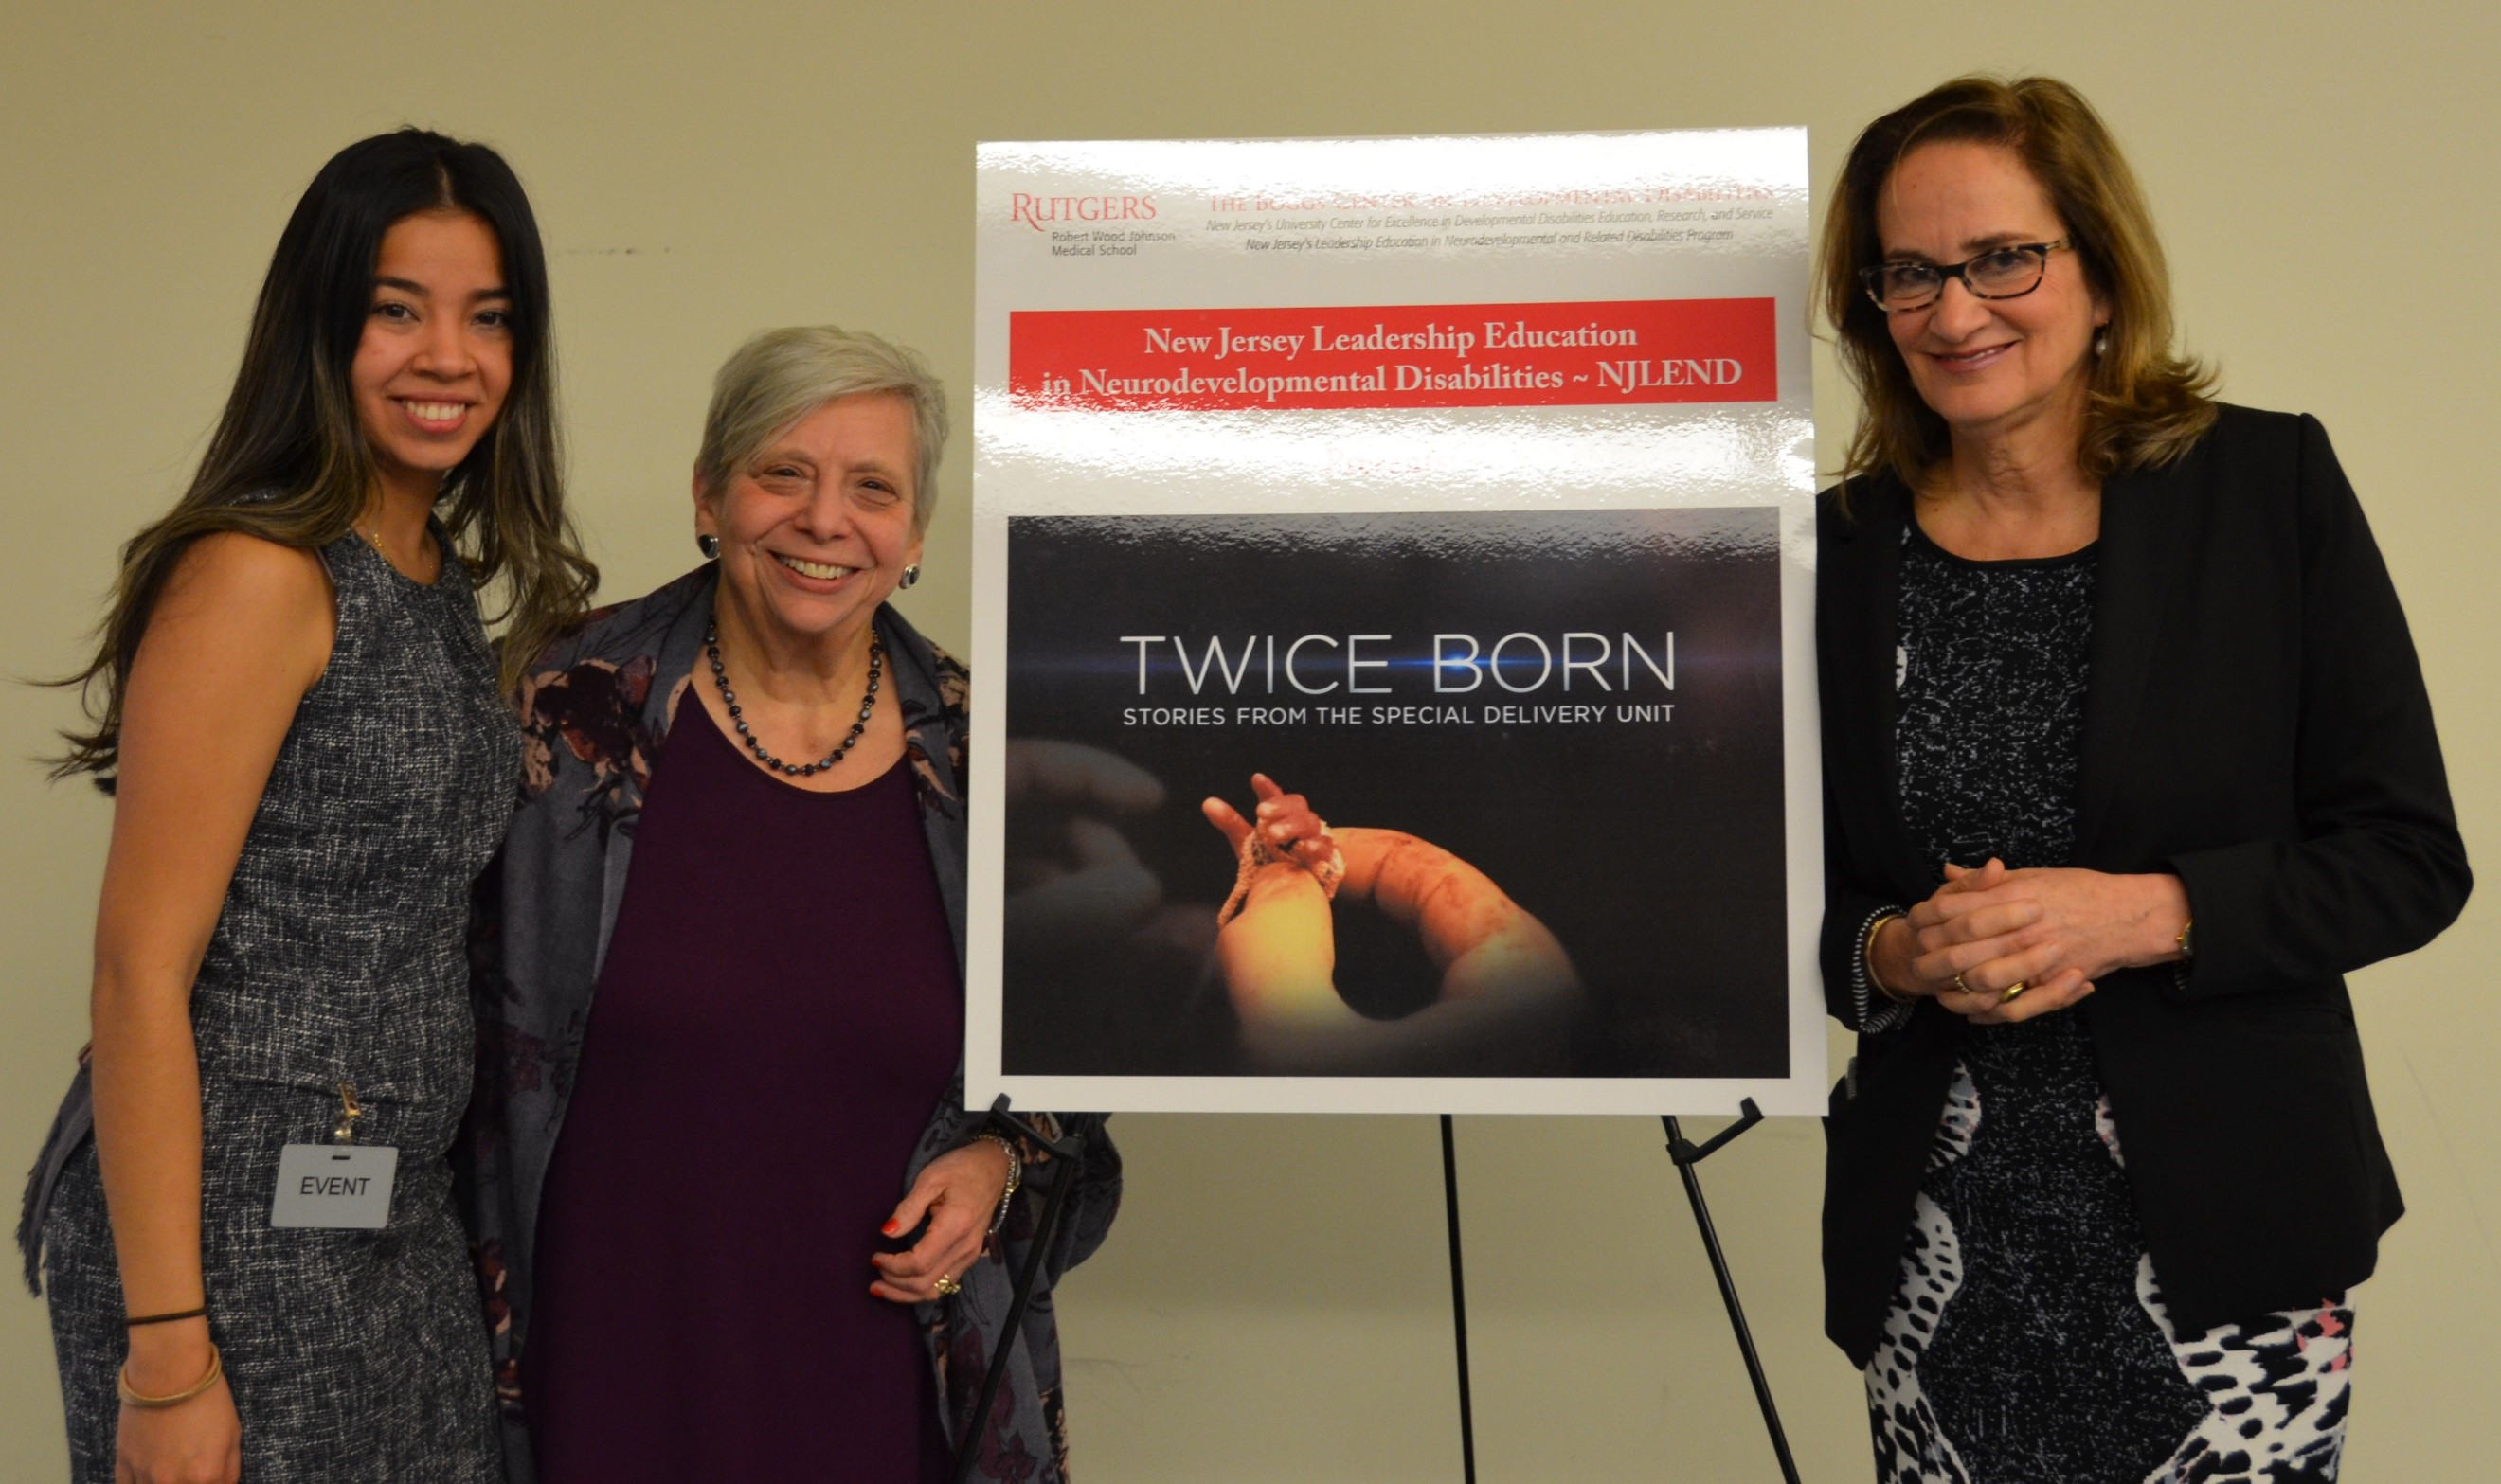 NJLEND Presents Twice Born: Stories from the Special Delivery Unit